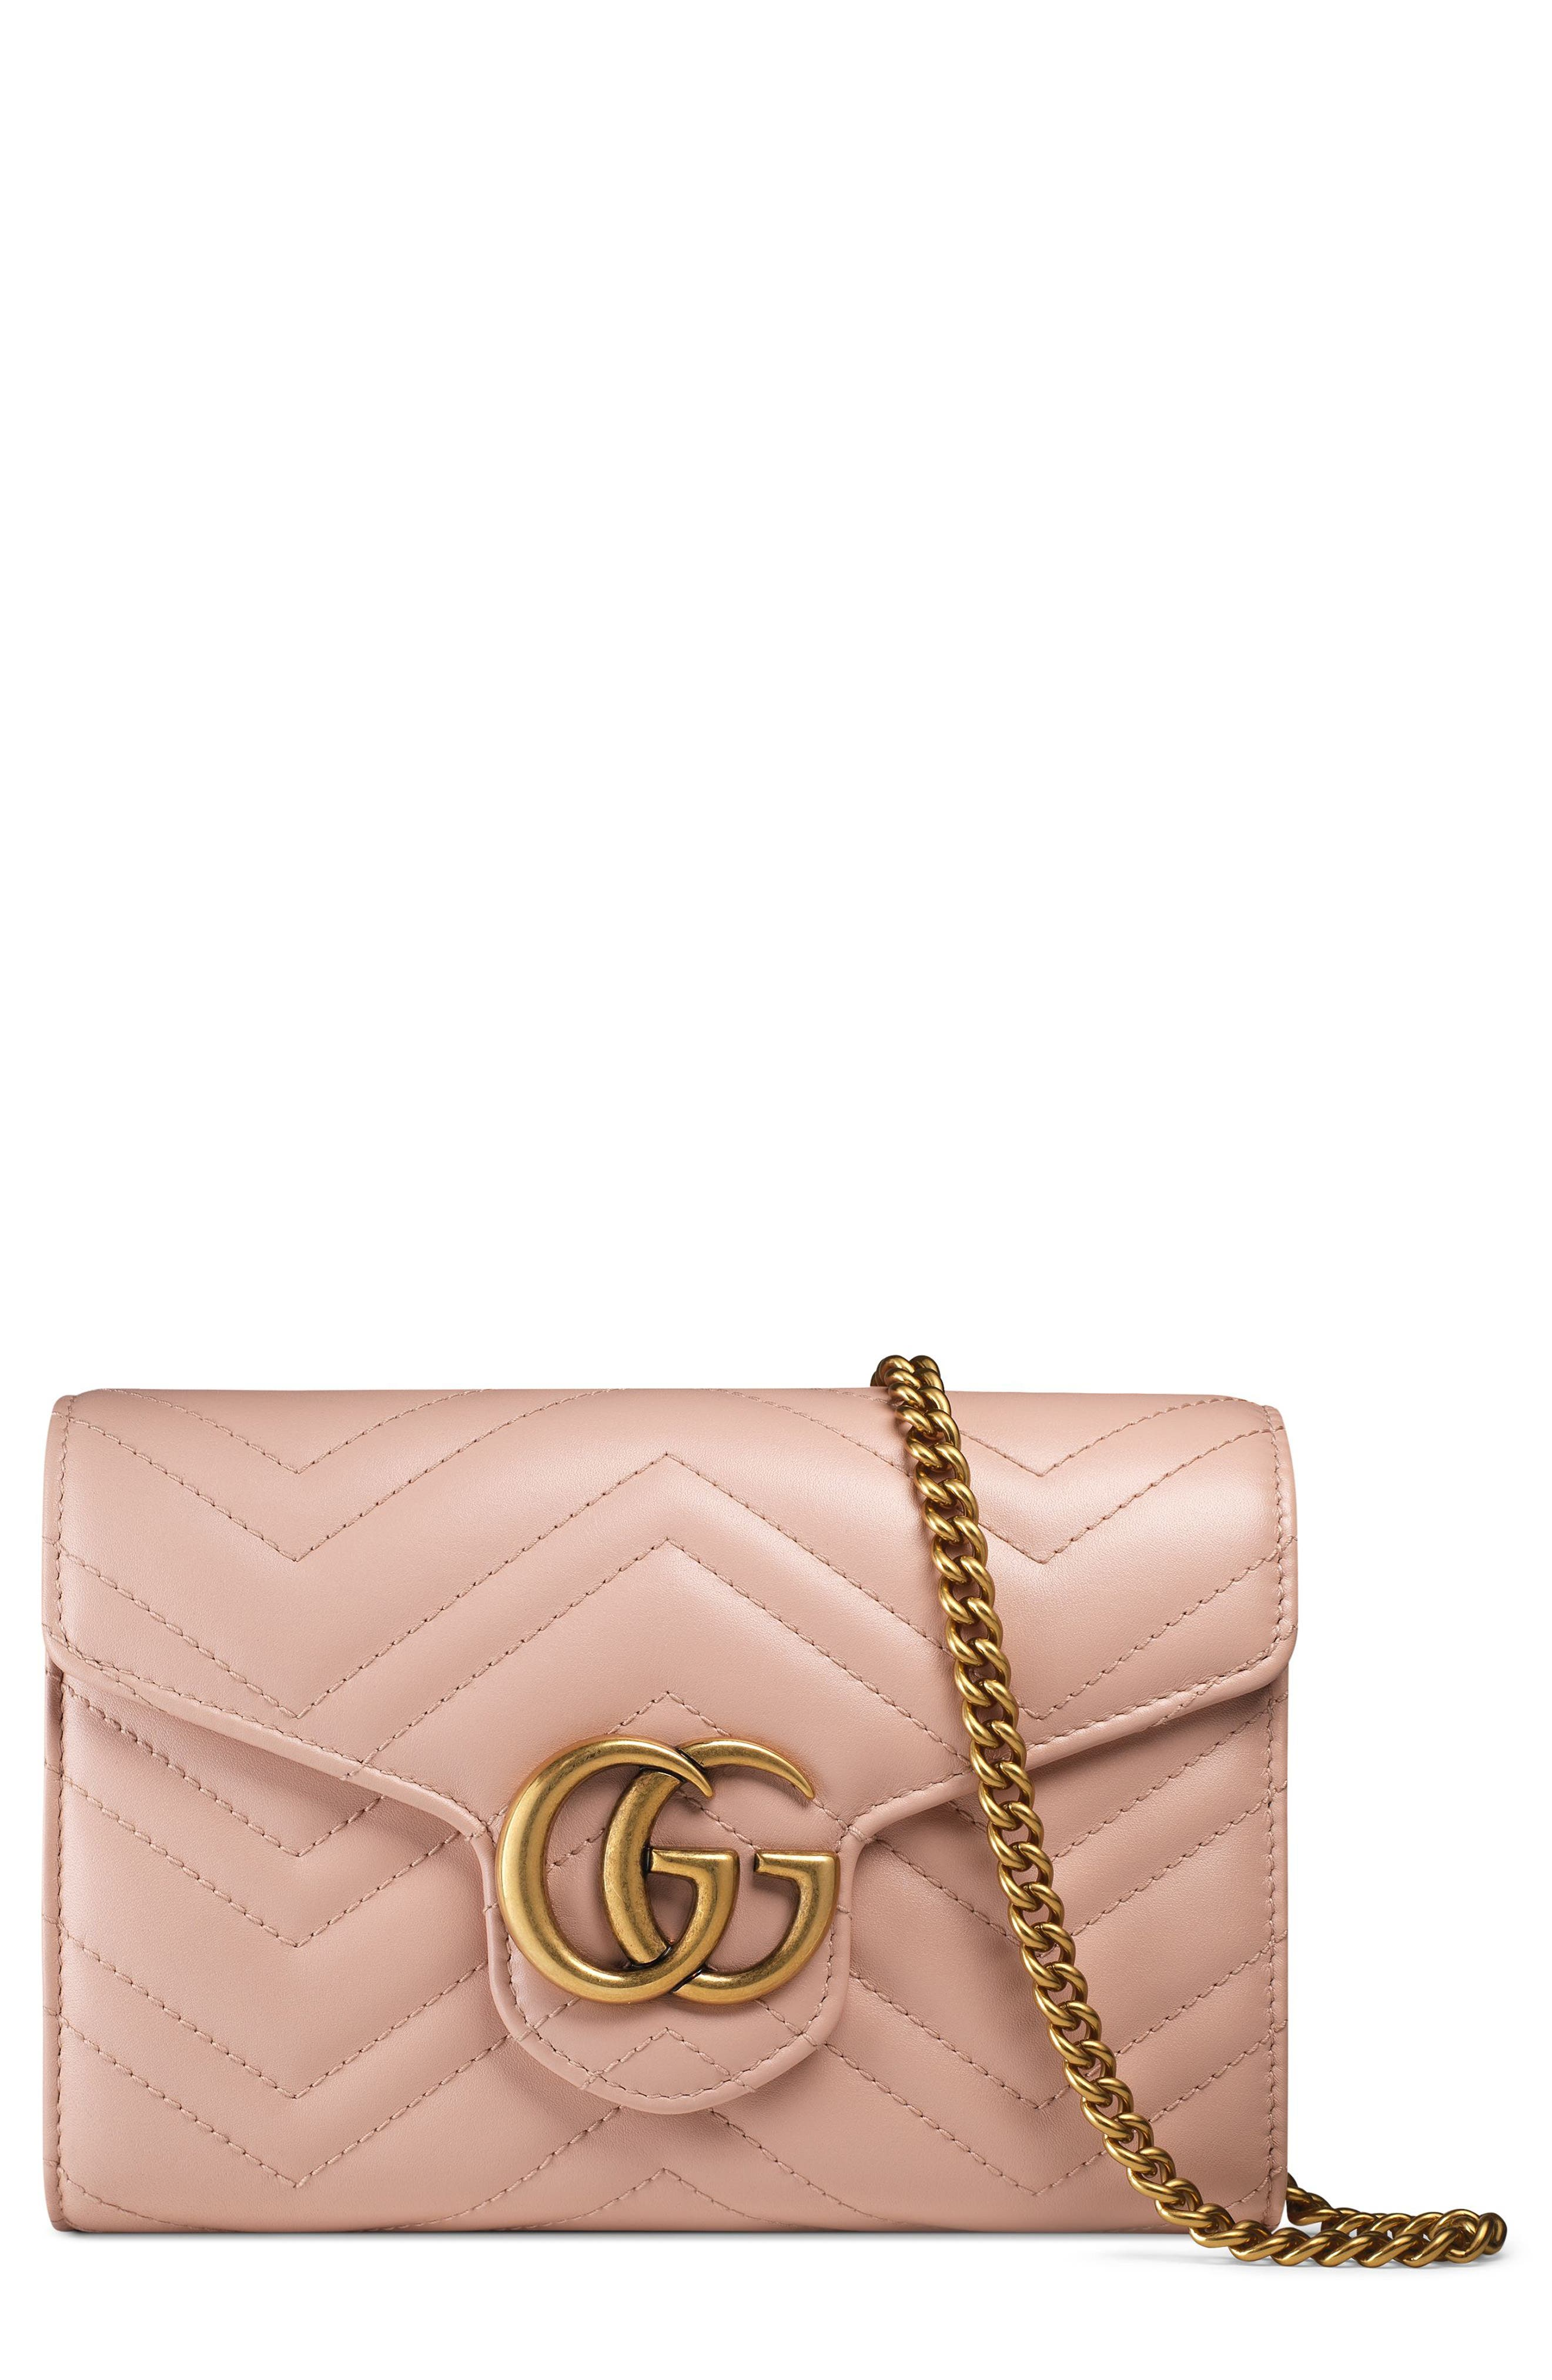 Gucci GG Marmont Matelassé Leather Wallet on a Chain